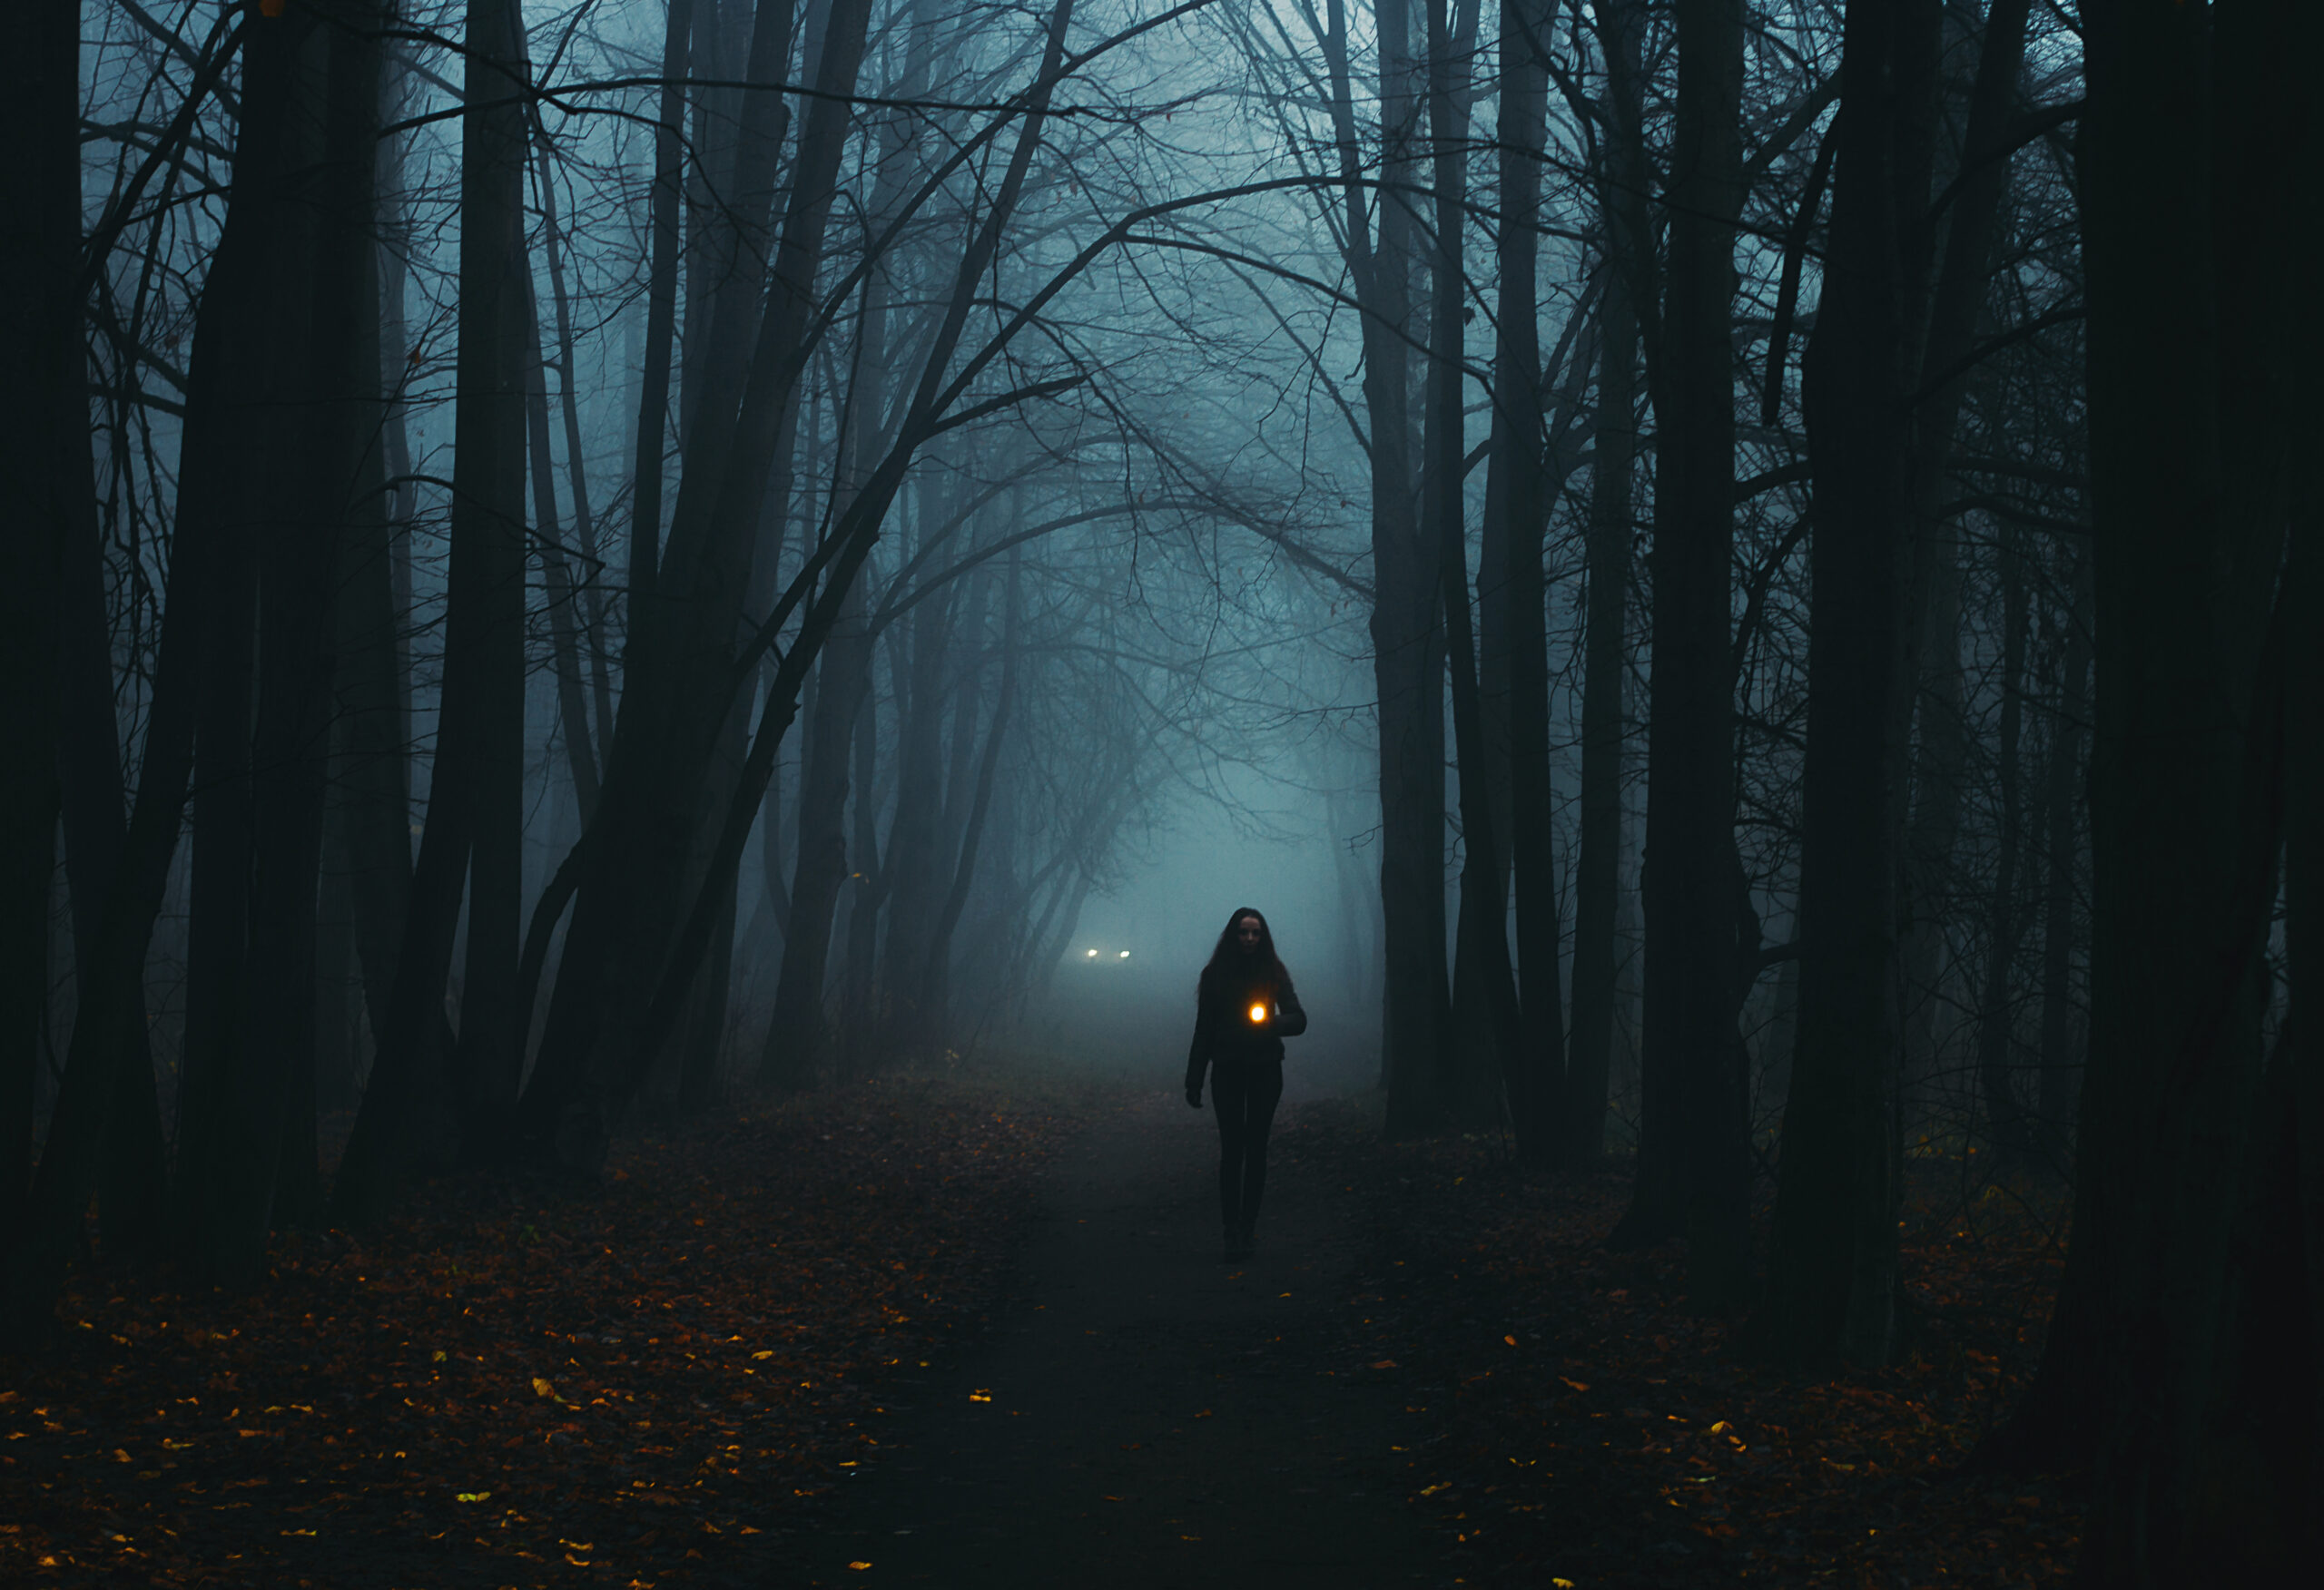 Photo of a foggy wooded area featuring a person walking in the dark with a latern.